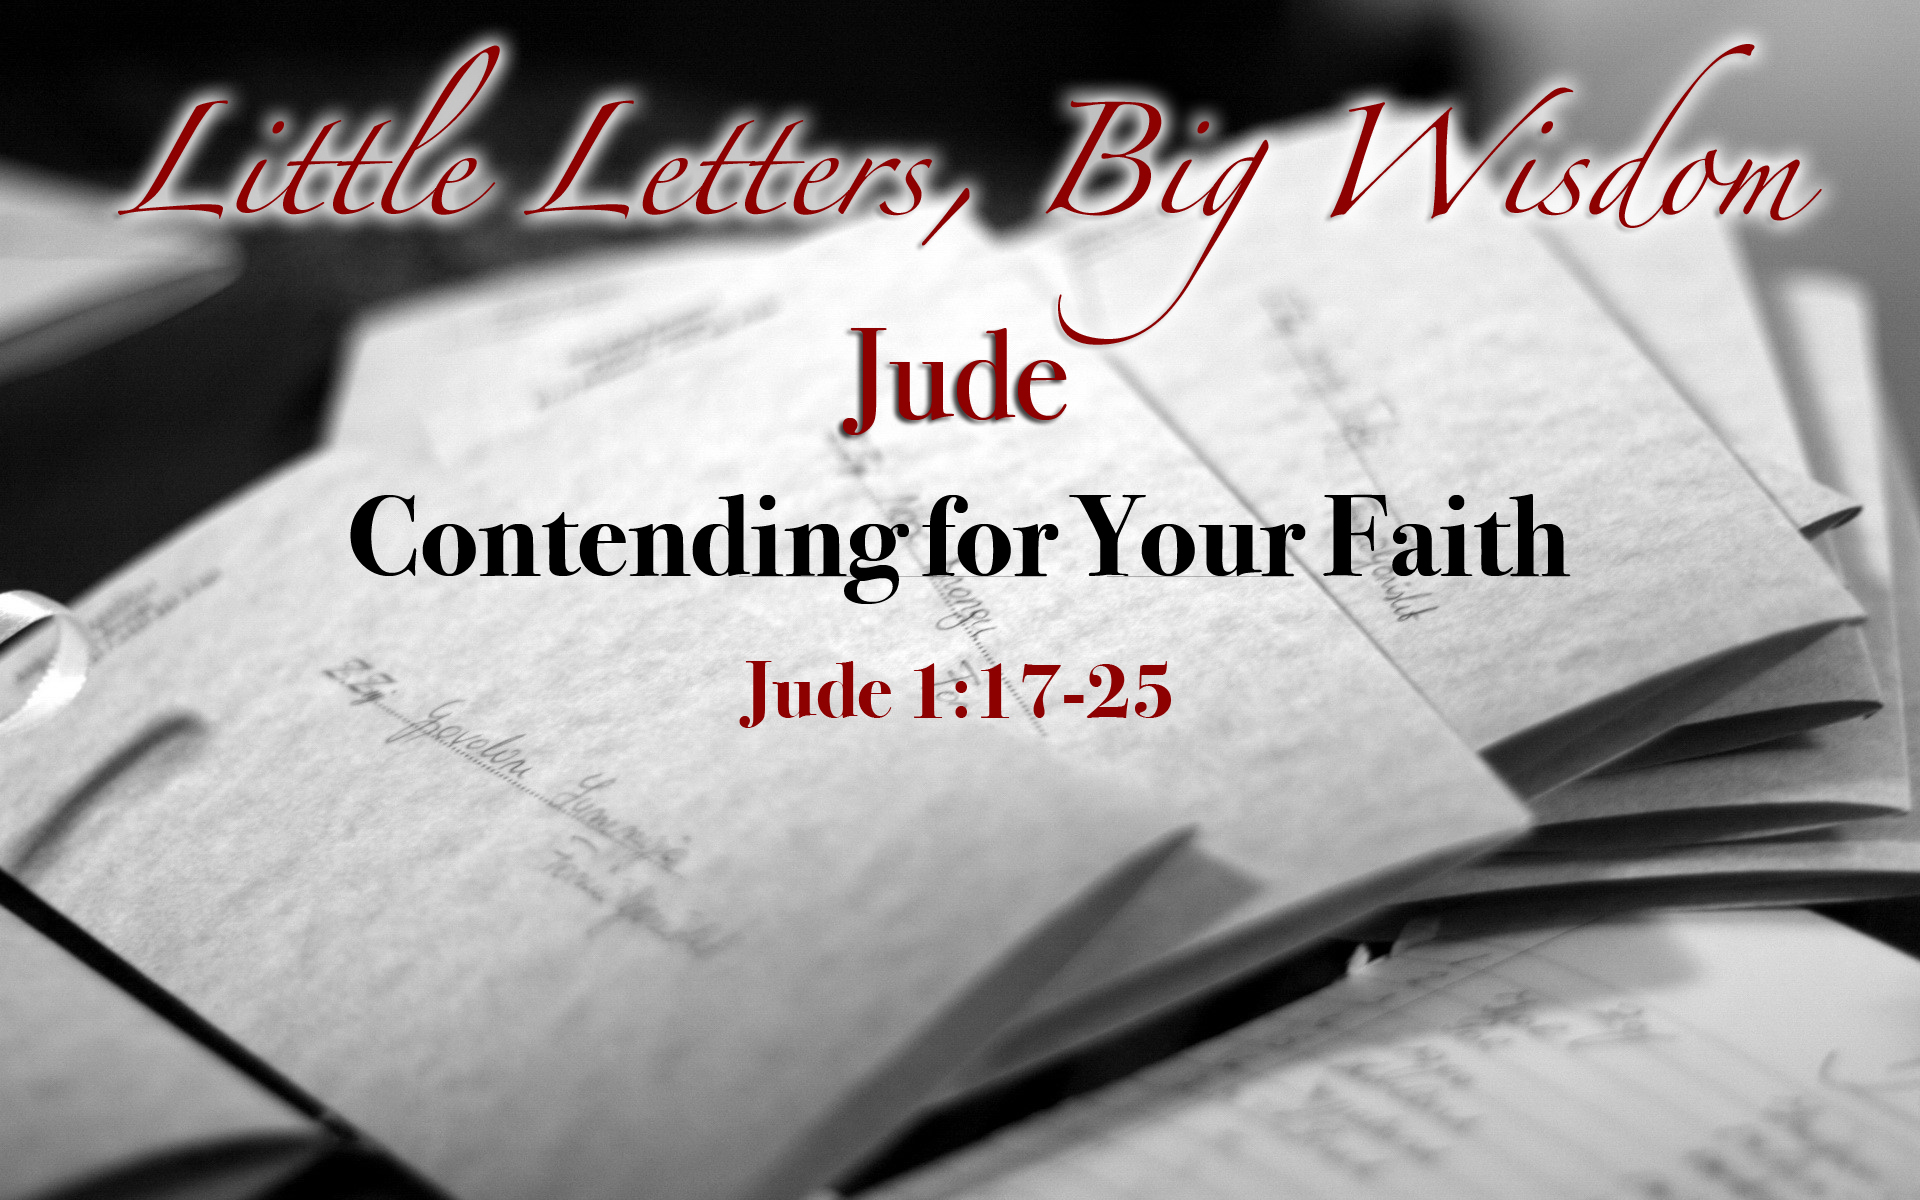 Contending for Your Faith